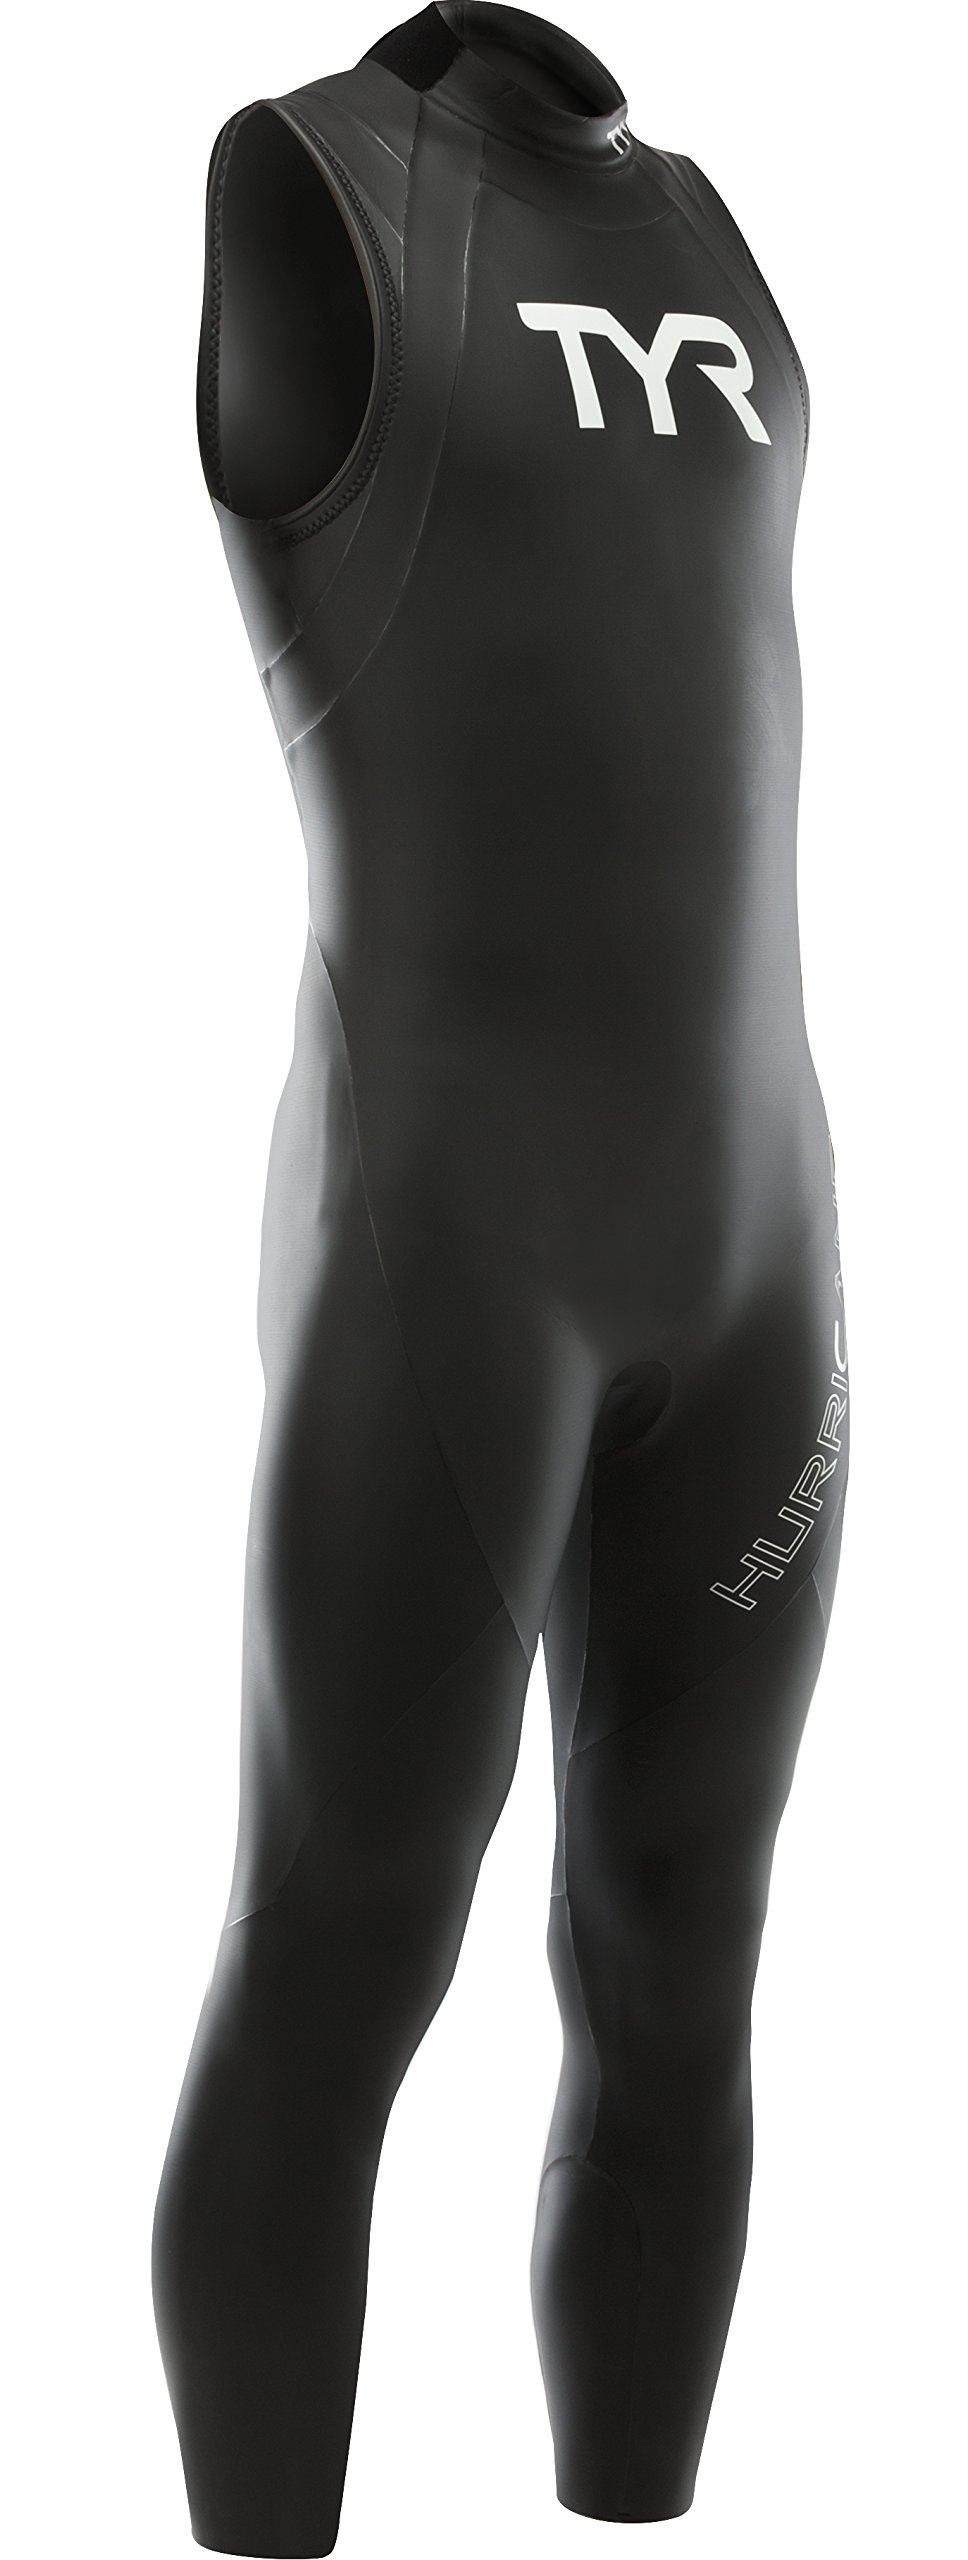 TYR Men's Hurricane Sleeveless Wetsuit Category 1, Black/White, Medium/Large by TYR